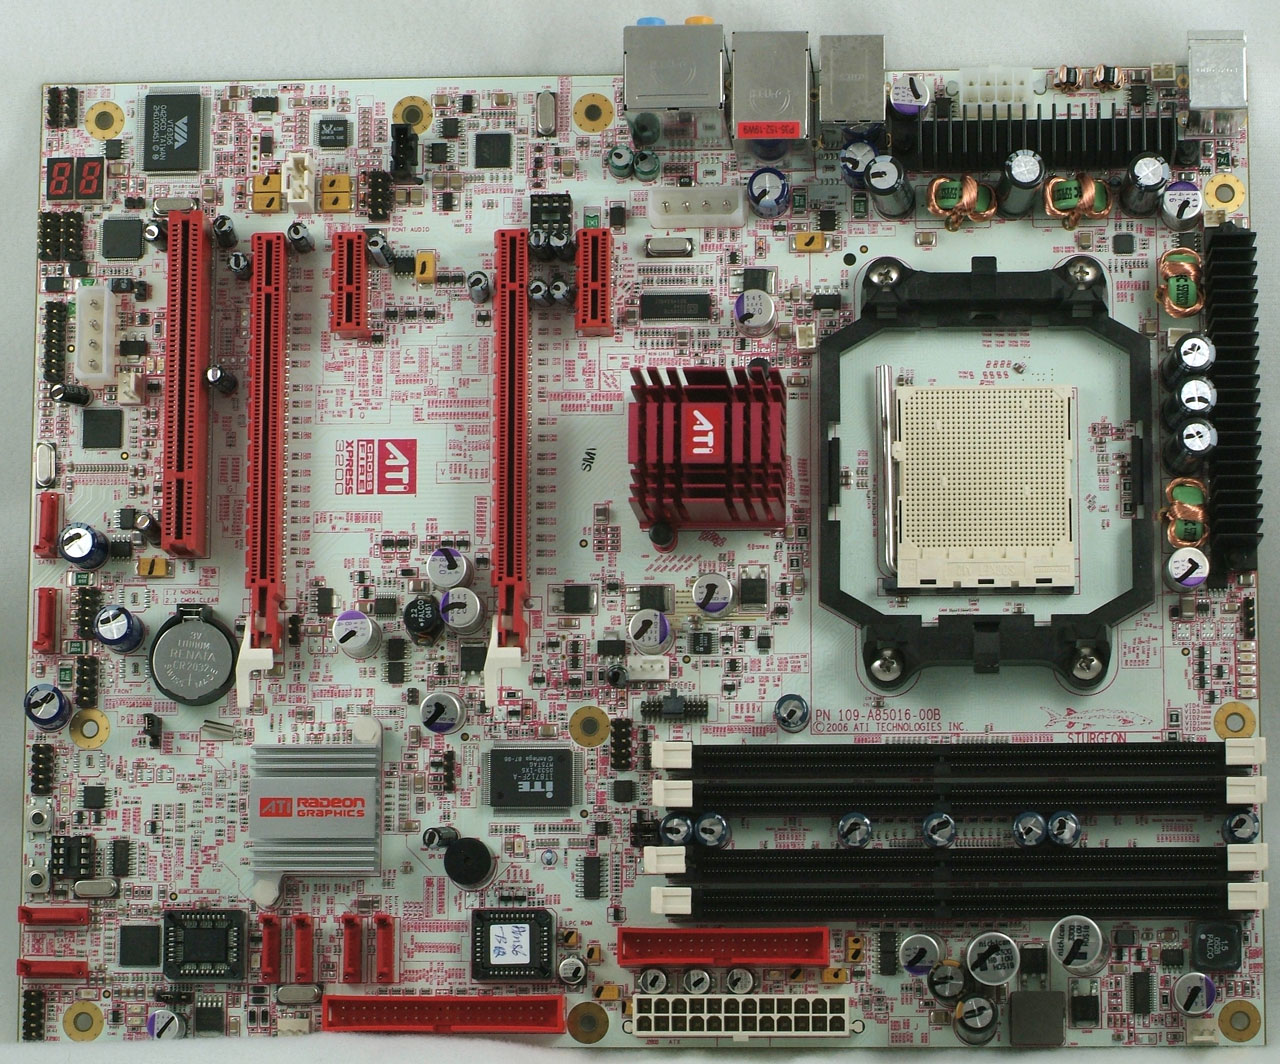 Chipset ati rs400 rc400 rc410 driver for mac